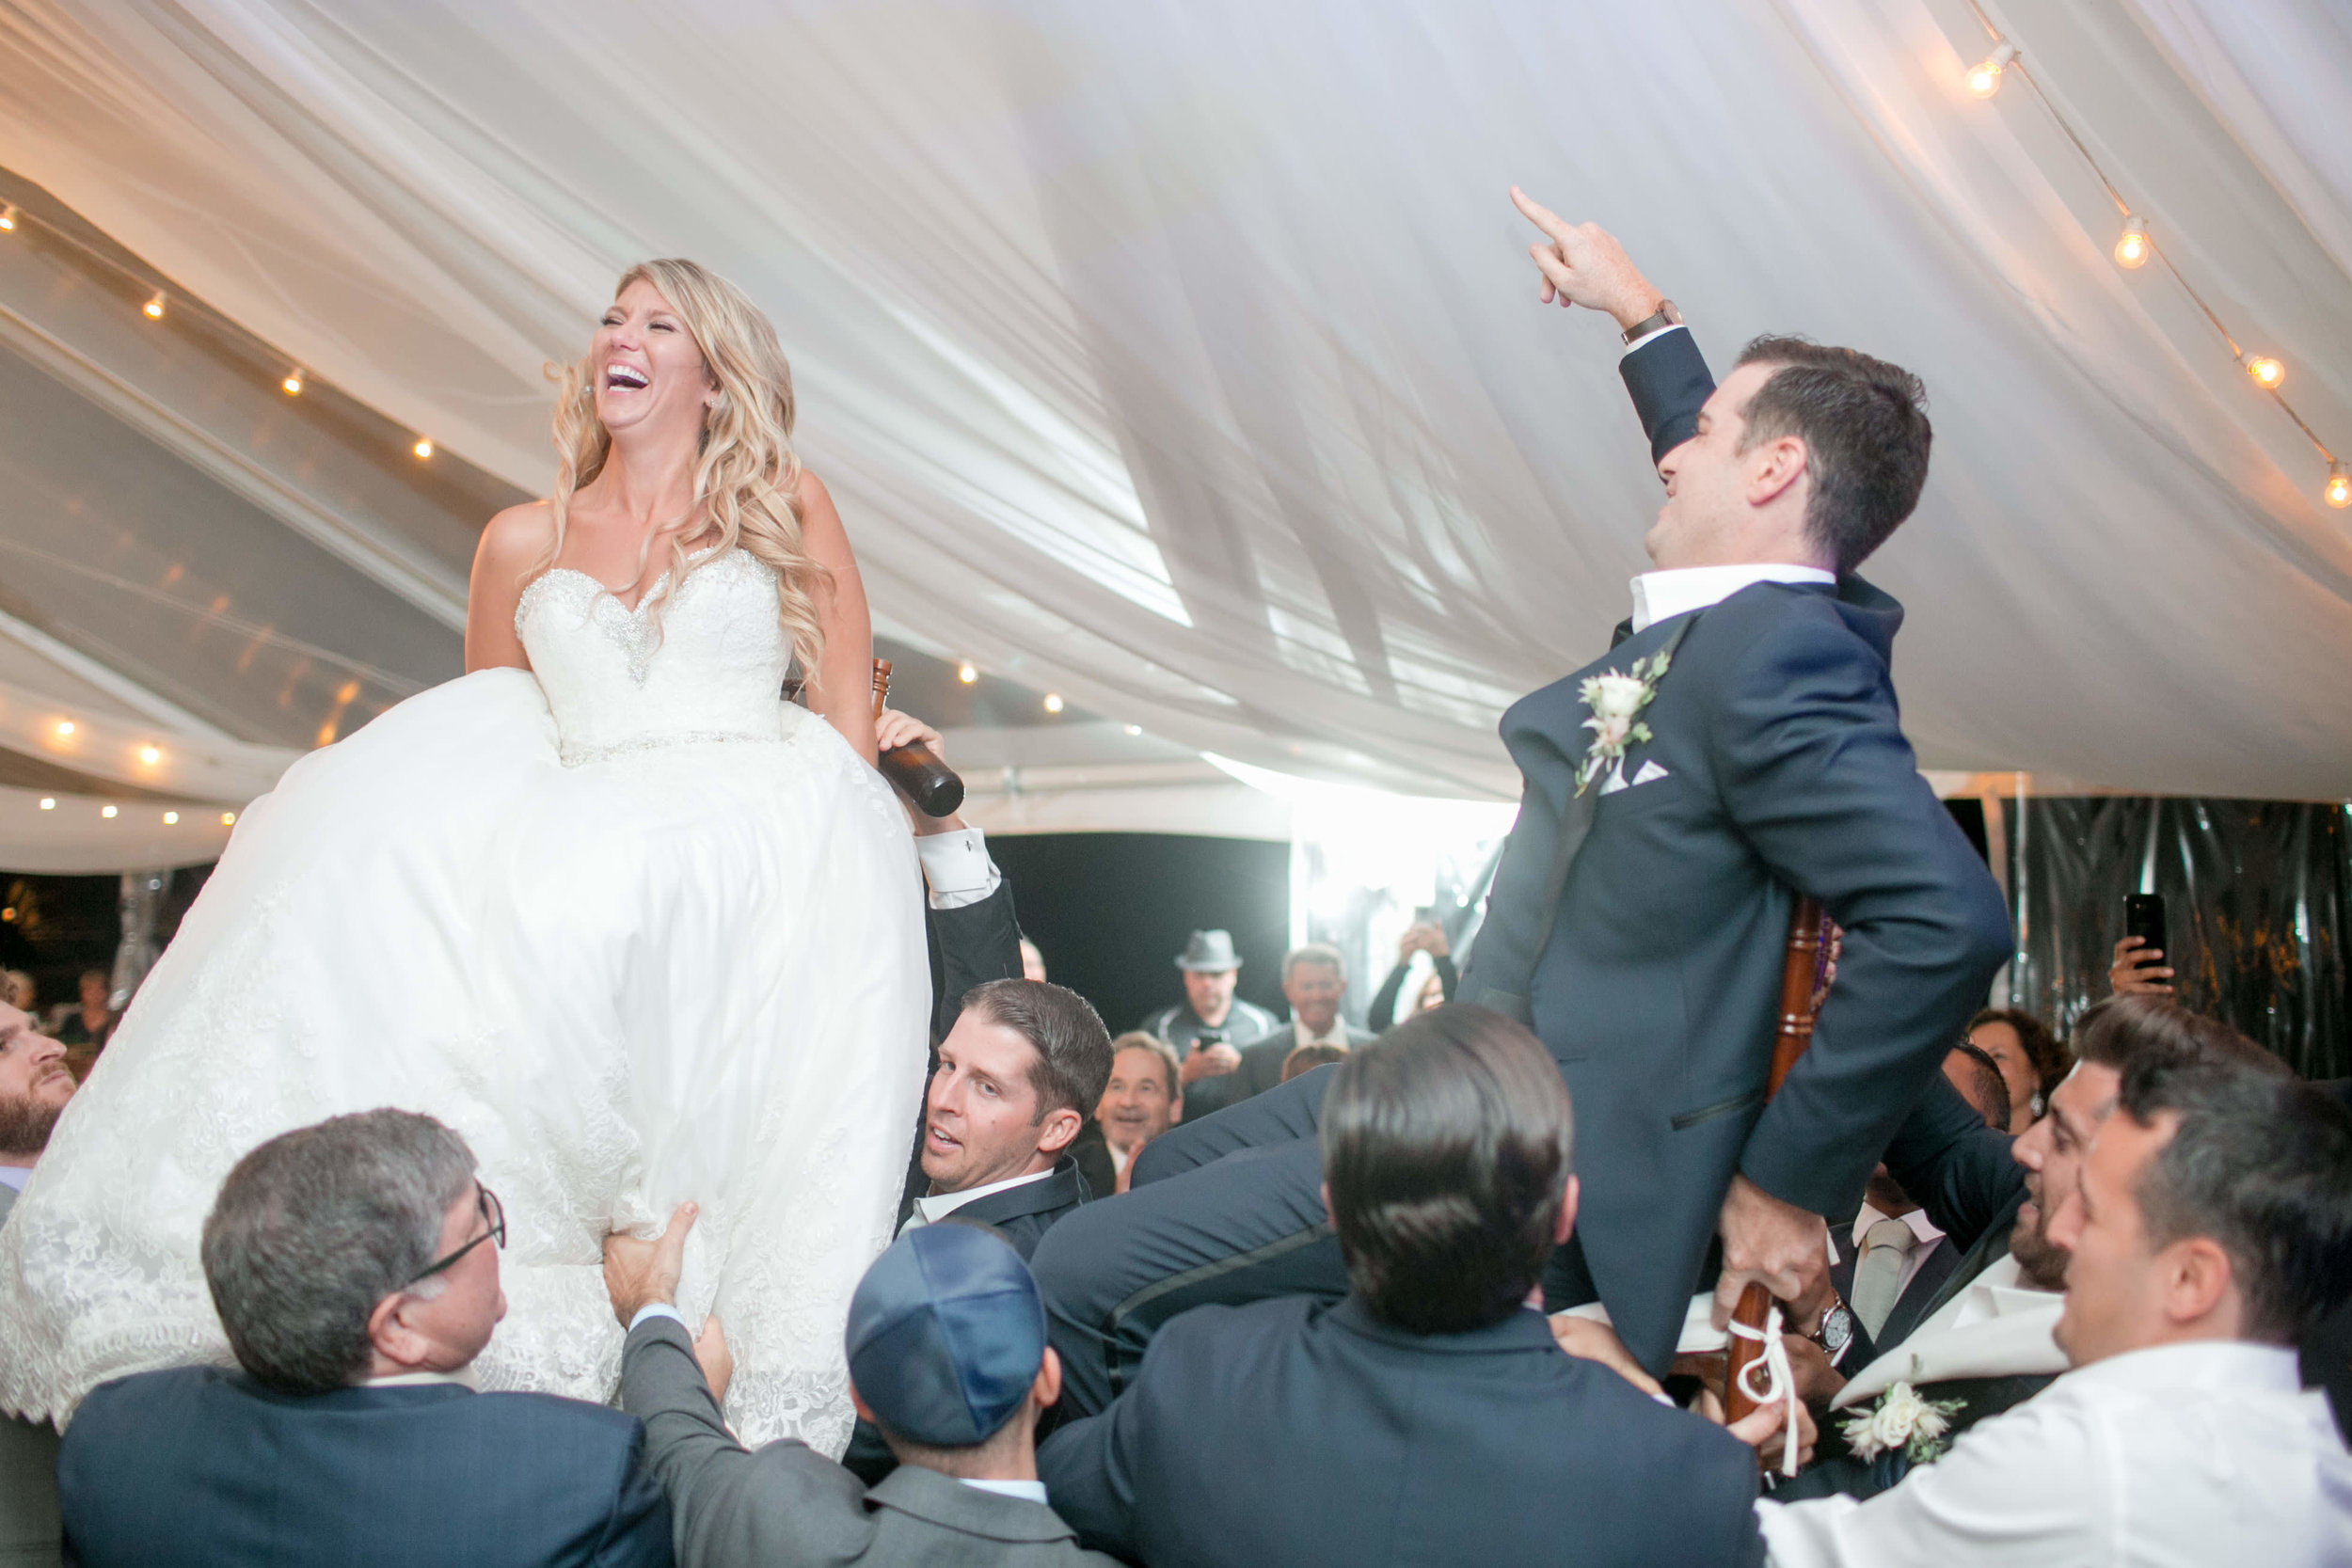 Ashley___Zac___Daniel_Ricci_Weddings___High_Res._Finals_646.jpg